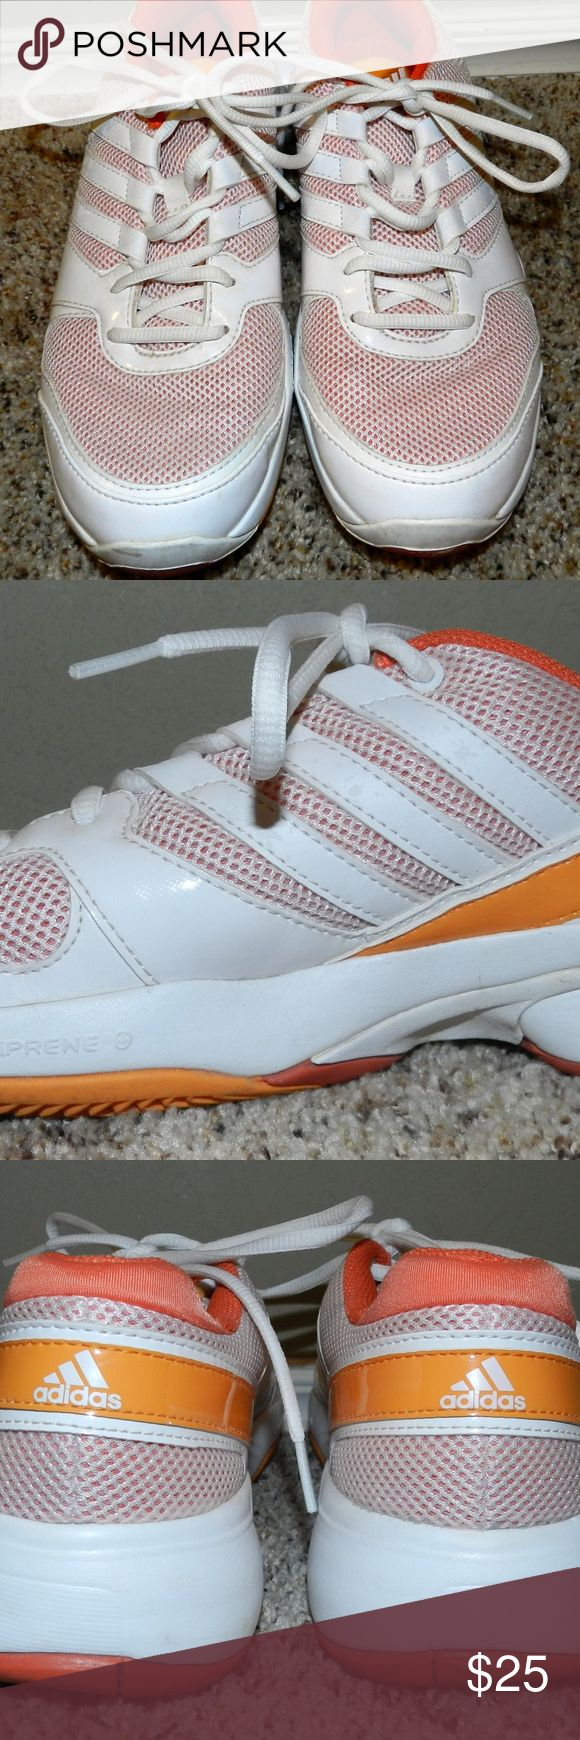 Adidas Tennis Shoes Like New!  White and Orange Adidas Tennis Shoes.  Worn twice!  No stains or flaws. adidas Shoes Athletic Shoes